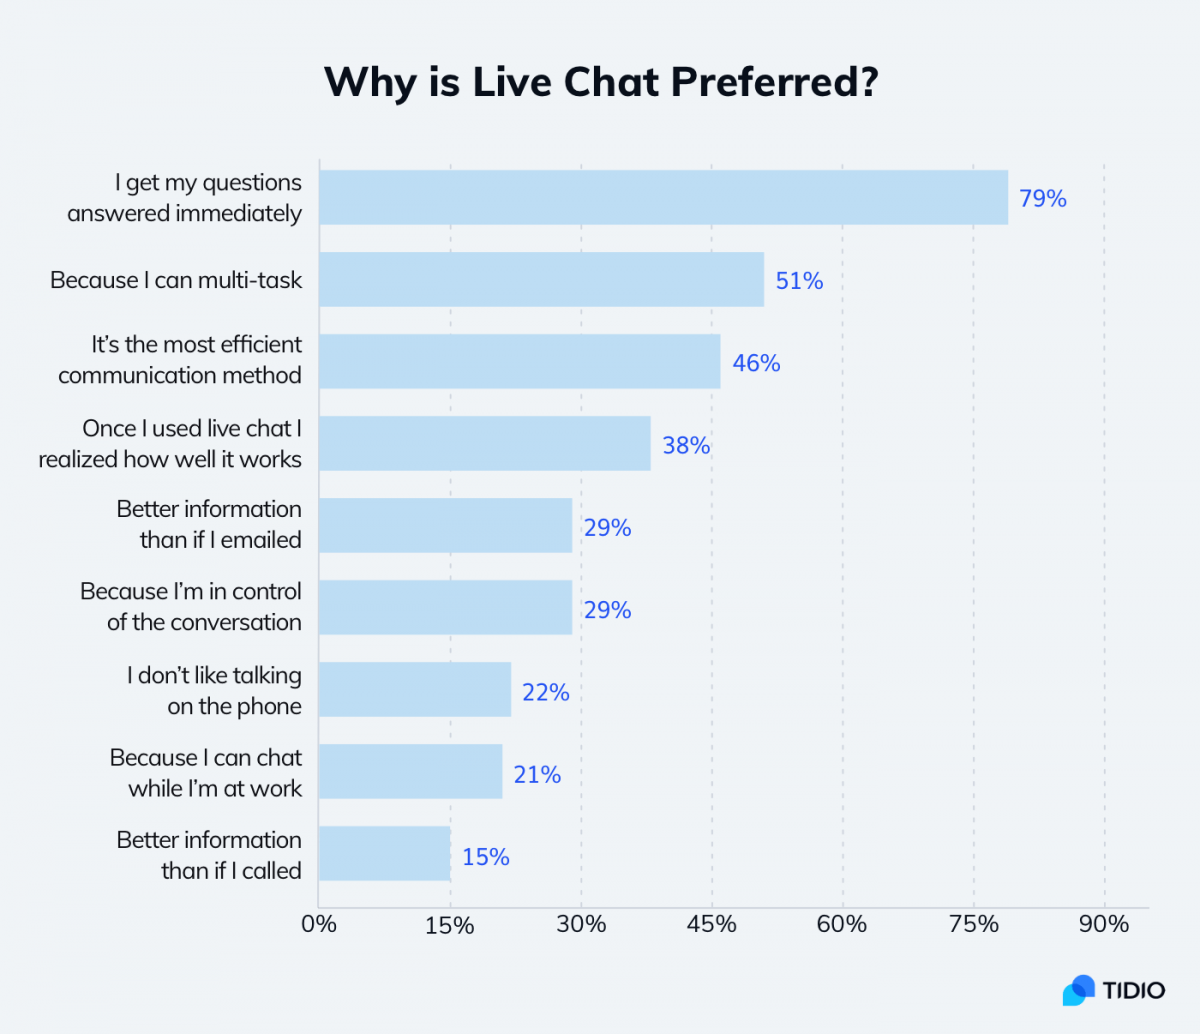 A chart showing reasons for live chat popularity